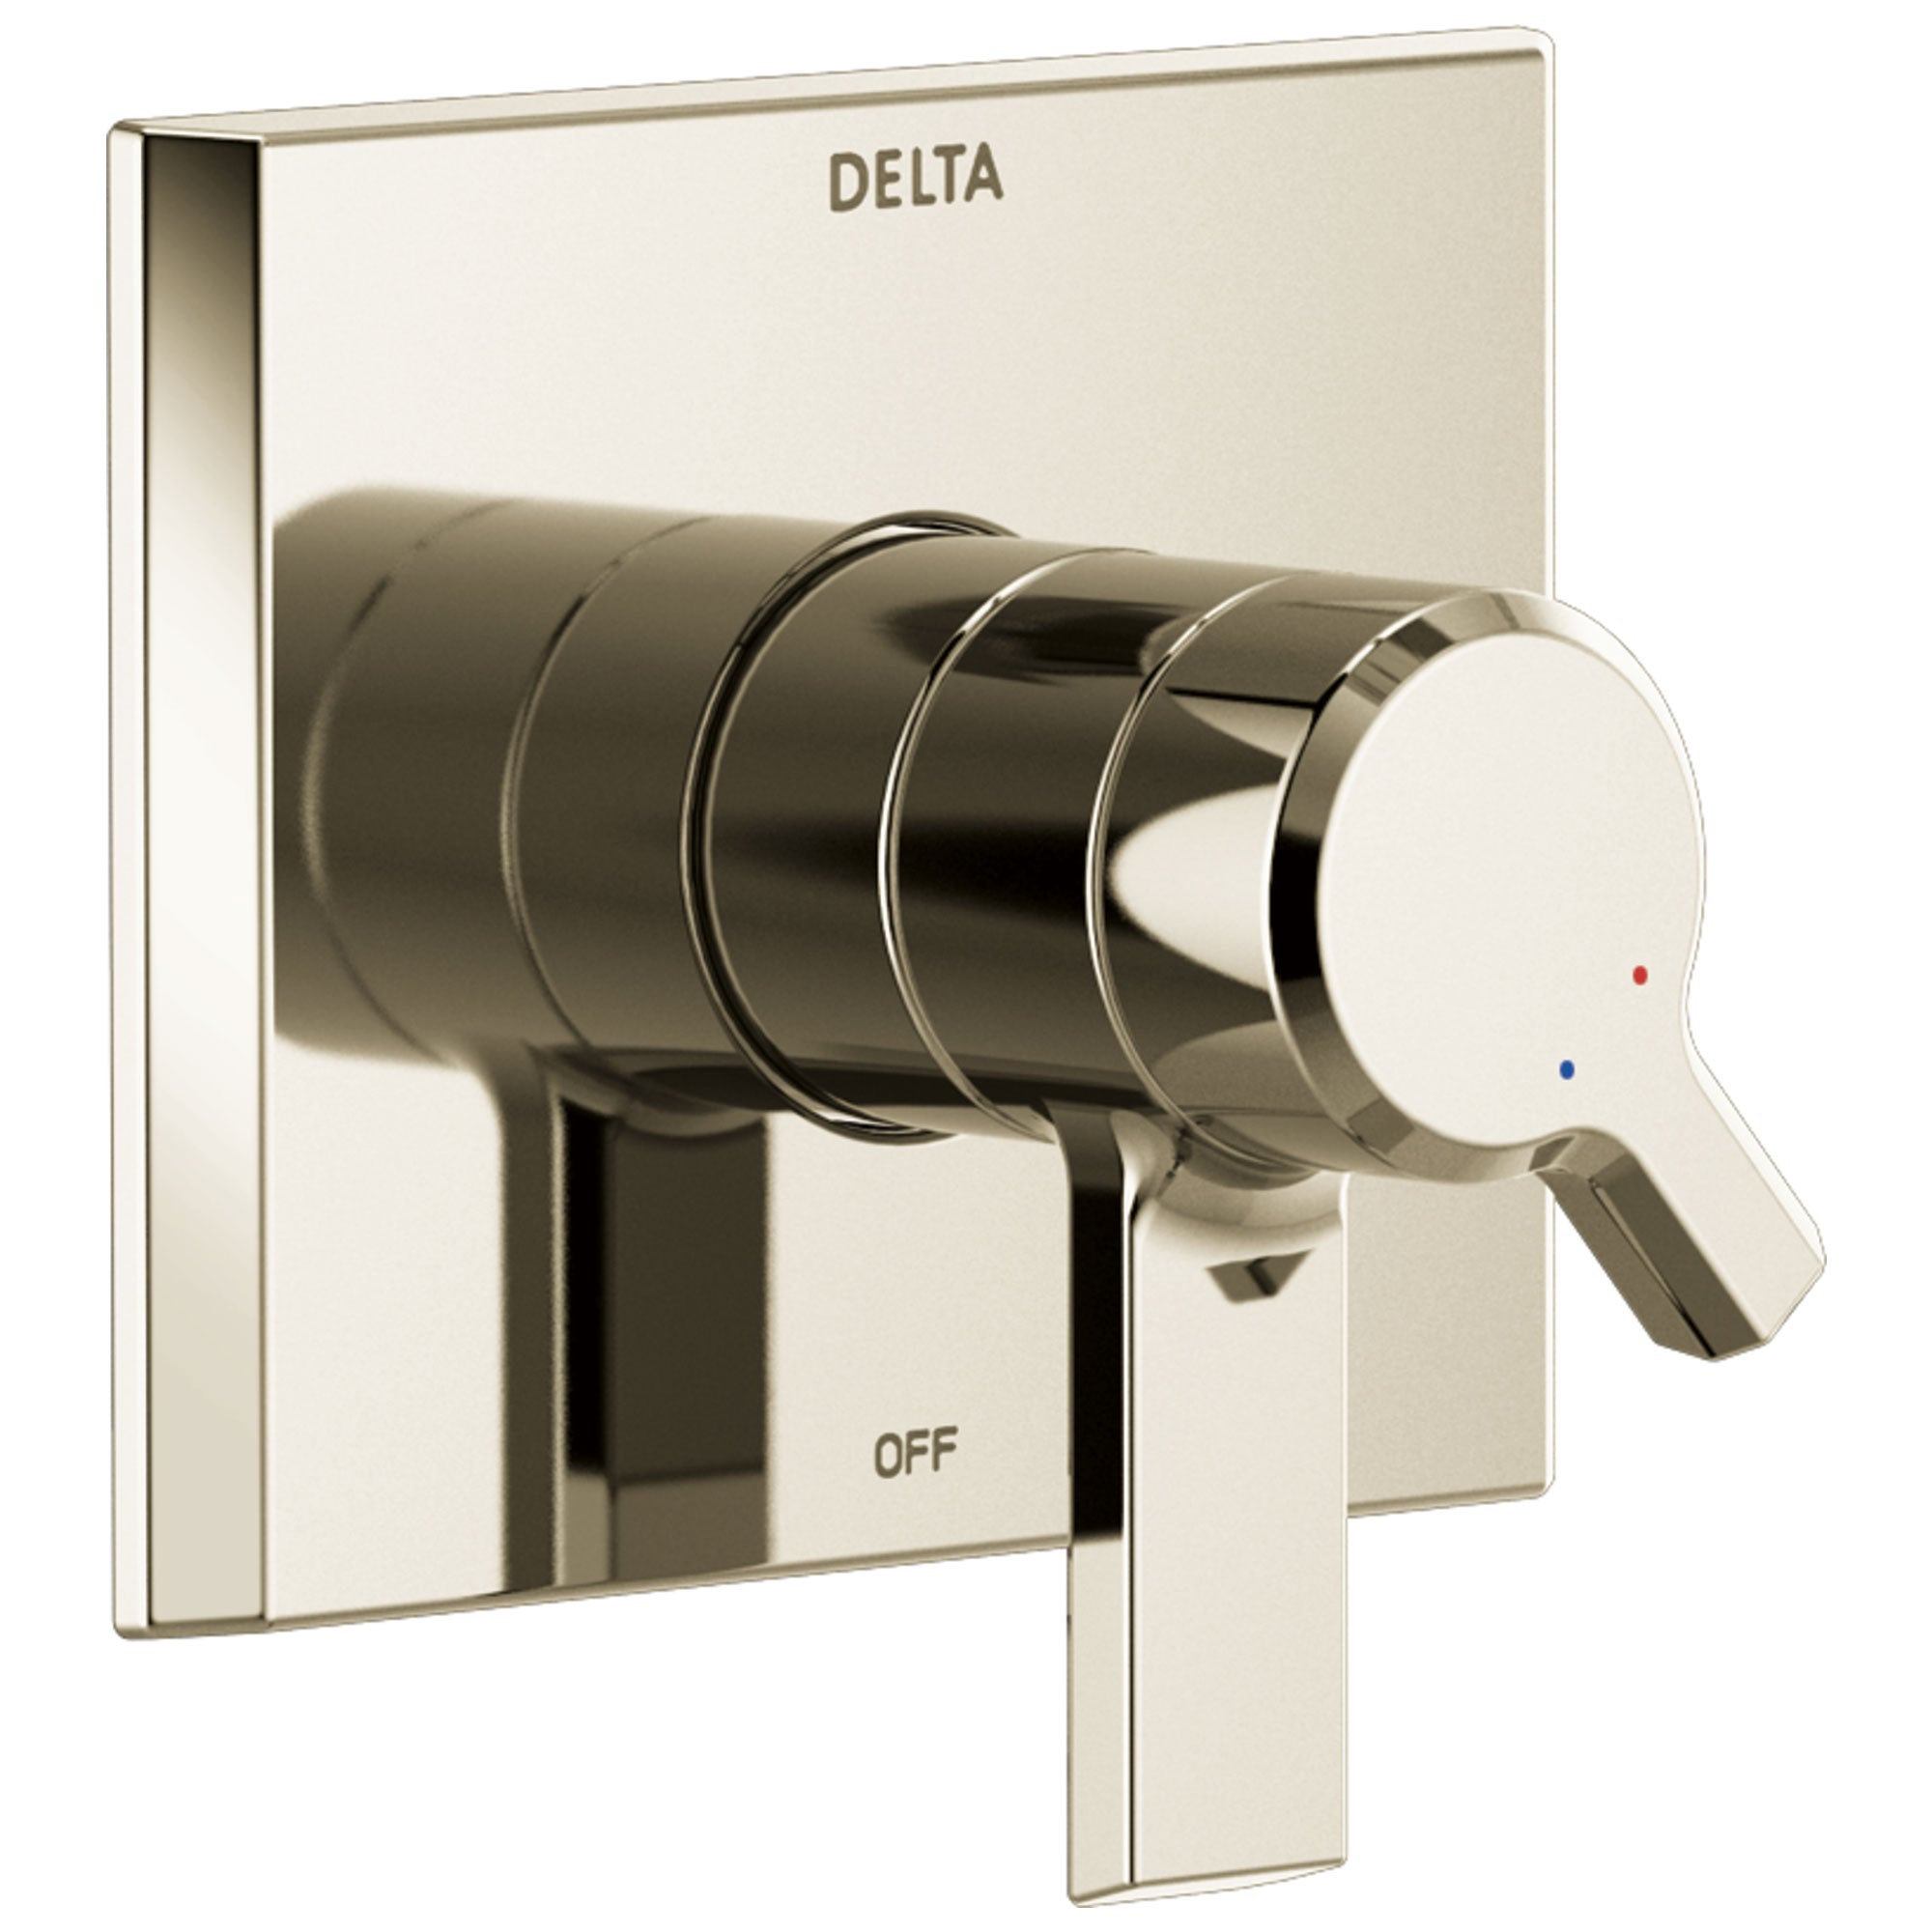 Delta Pivotal Polished Nickel Finish Monitor 17 Series Shower Faucet Control Only Trim Kit (Requires Valve) DT17099PN